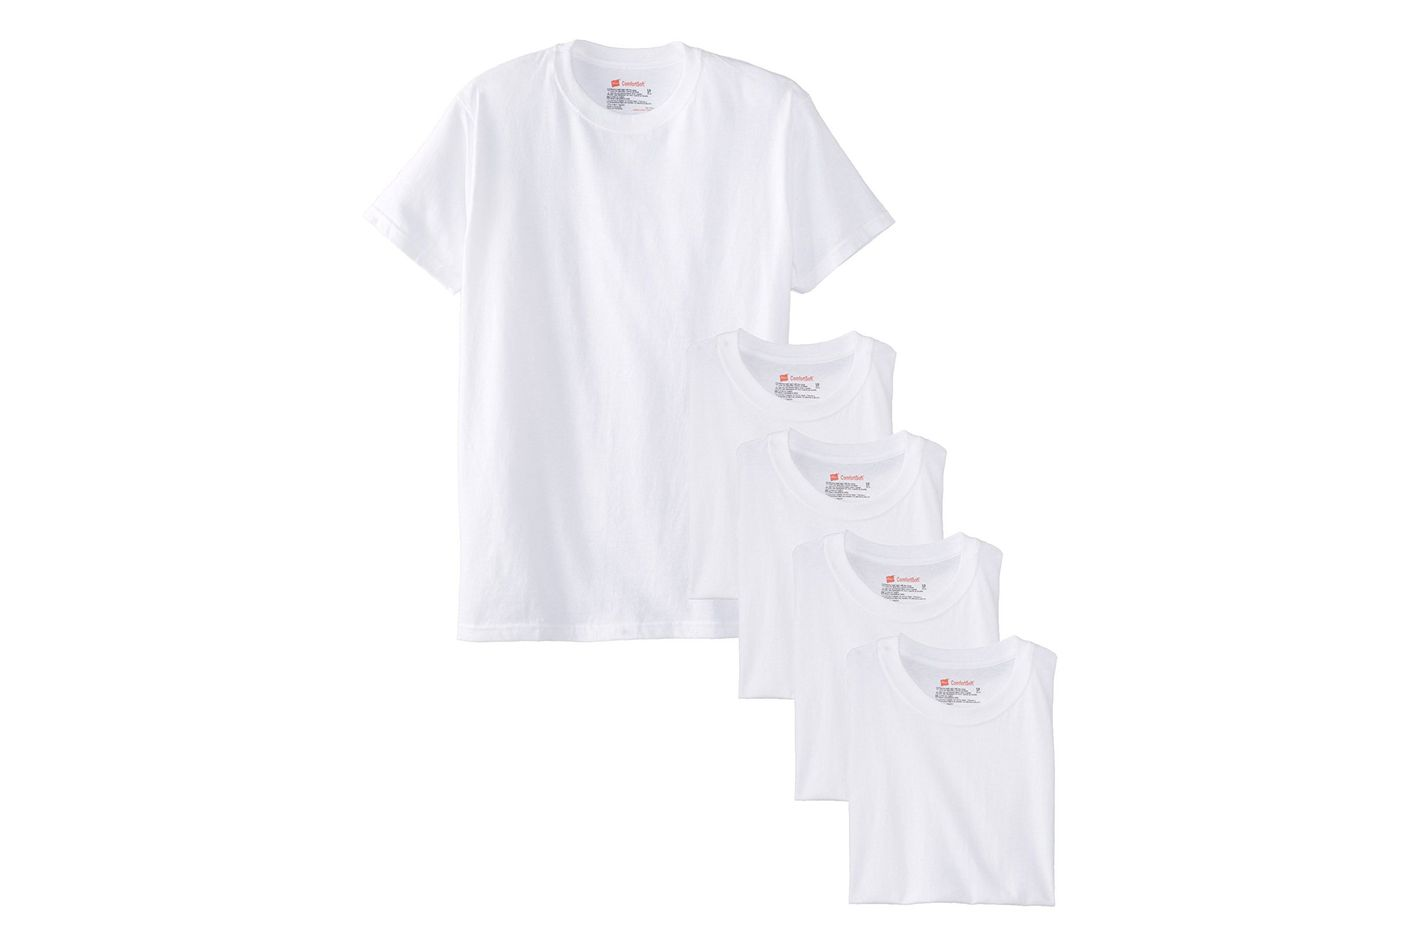 best women's white t-shirt